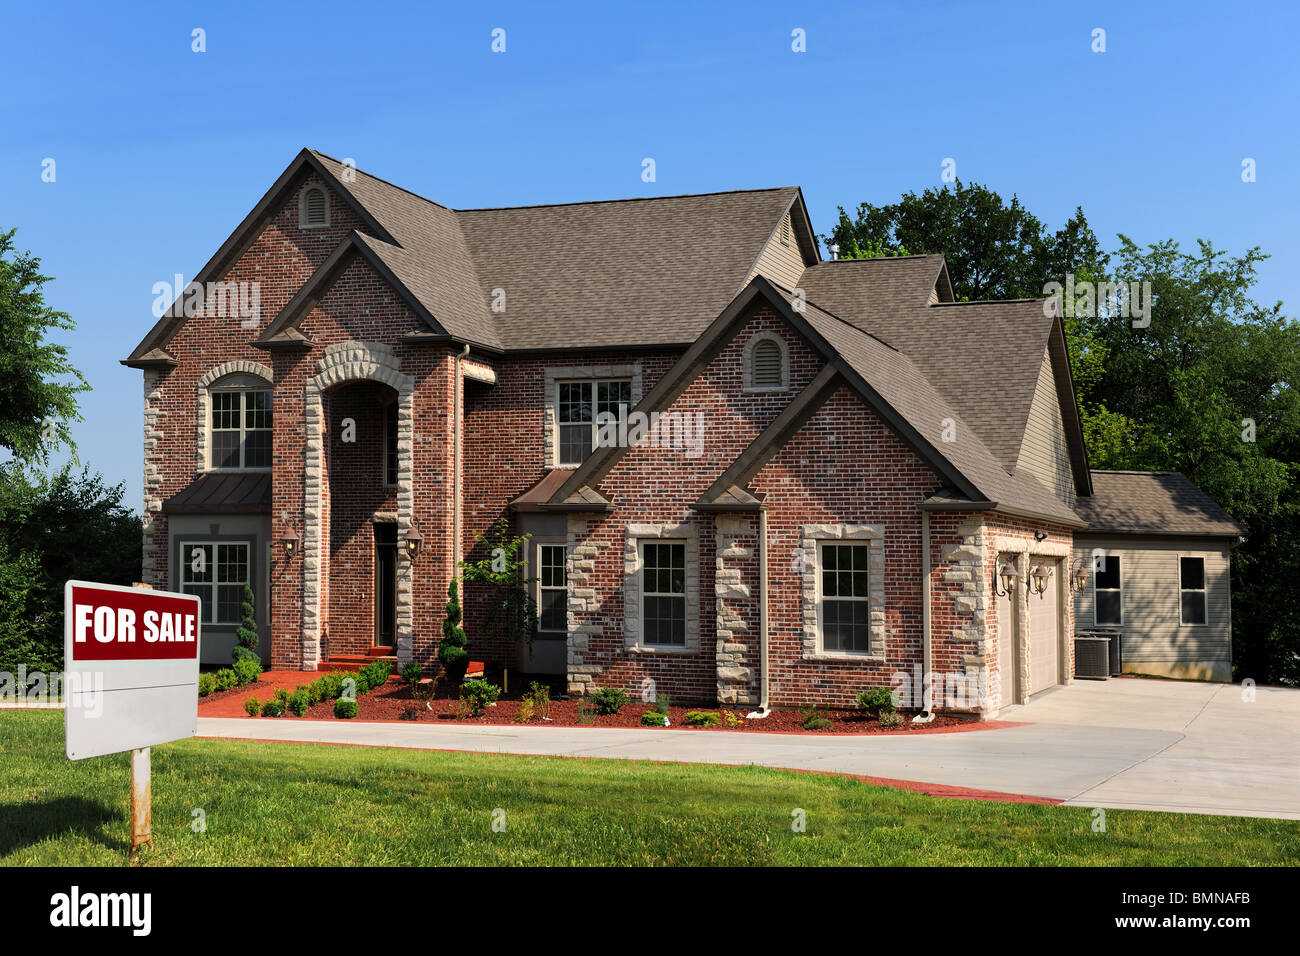 New house for sale with sign on front yard - Stock Image